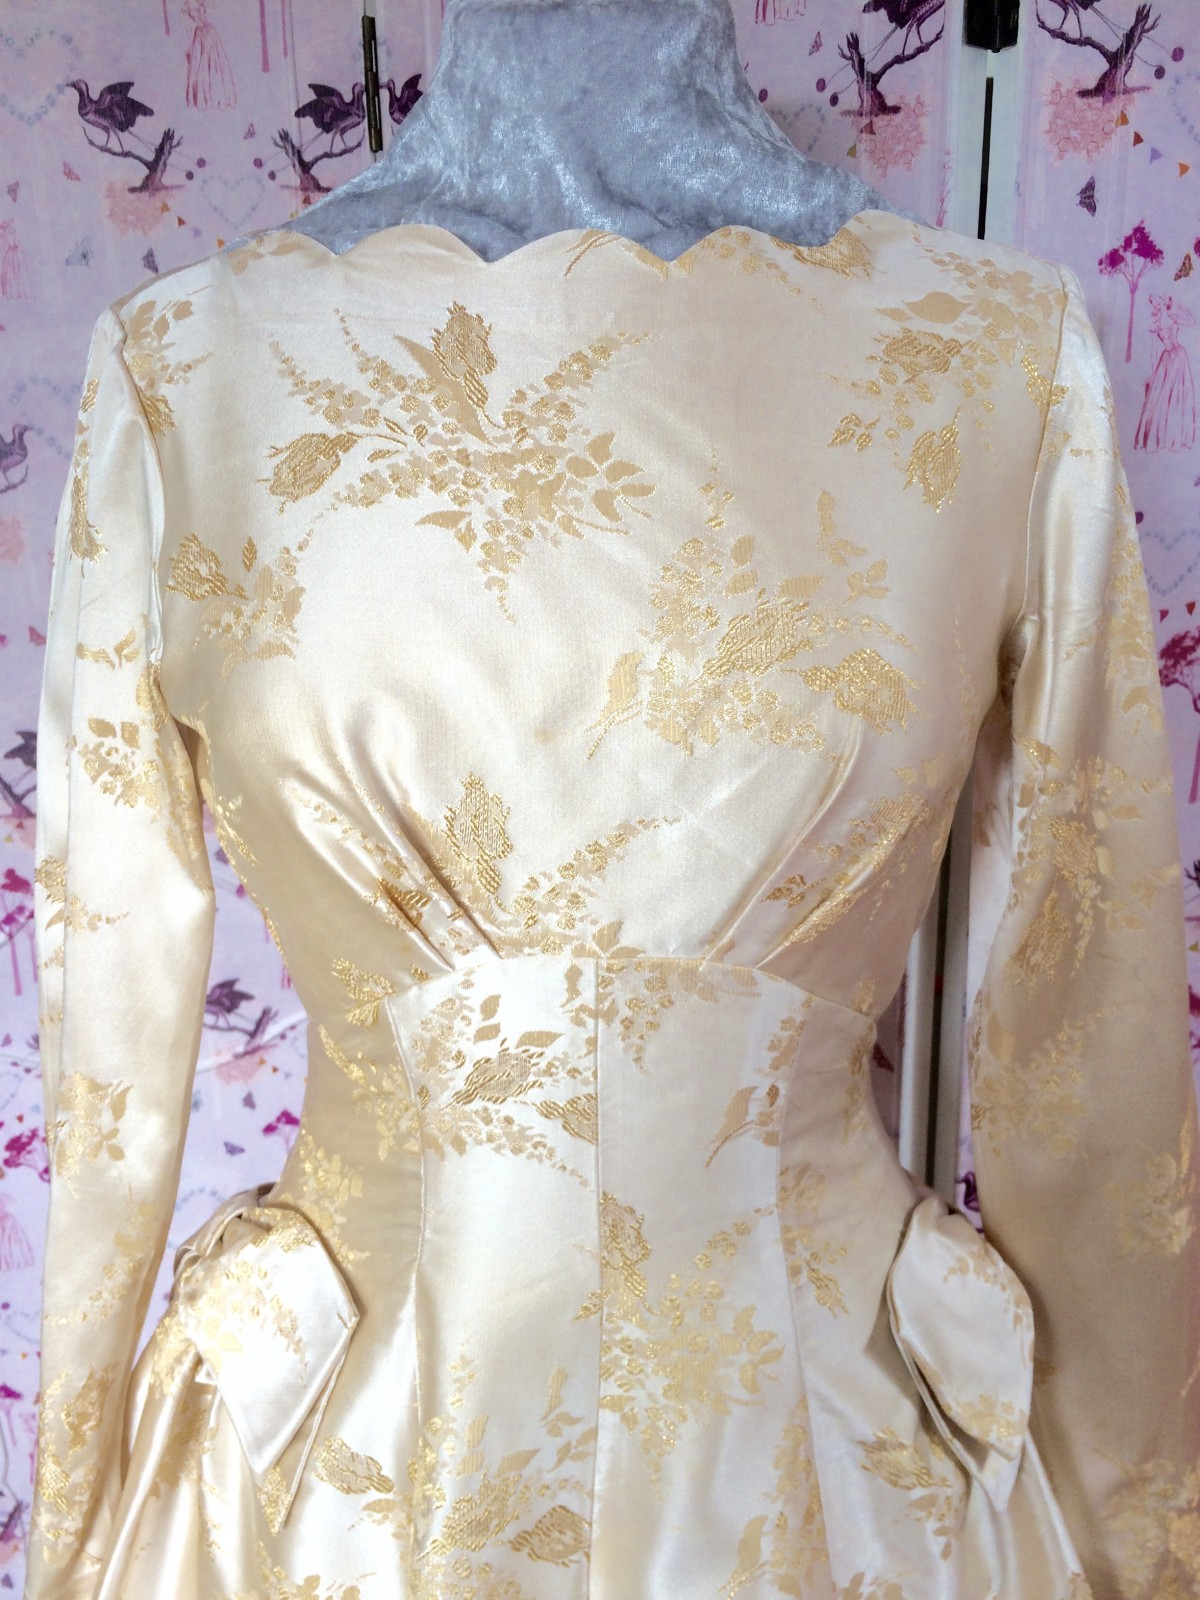 Lovely Pale gold satin 60s vintage wedding dress, gorgeous full skirt -just below knee length with long sleeves and scalloped boat neckline. Very cute and pretty.